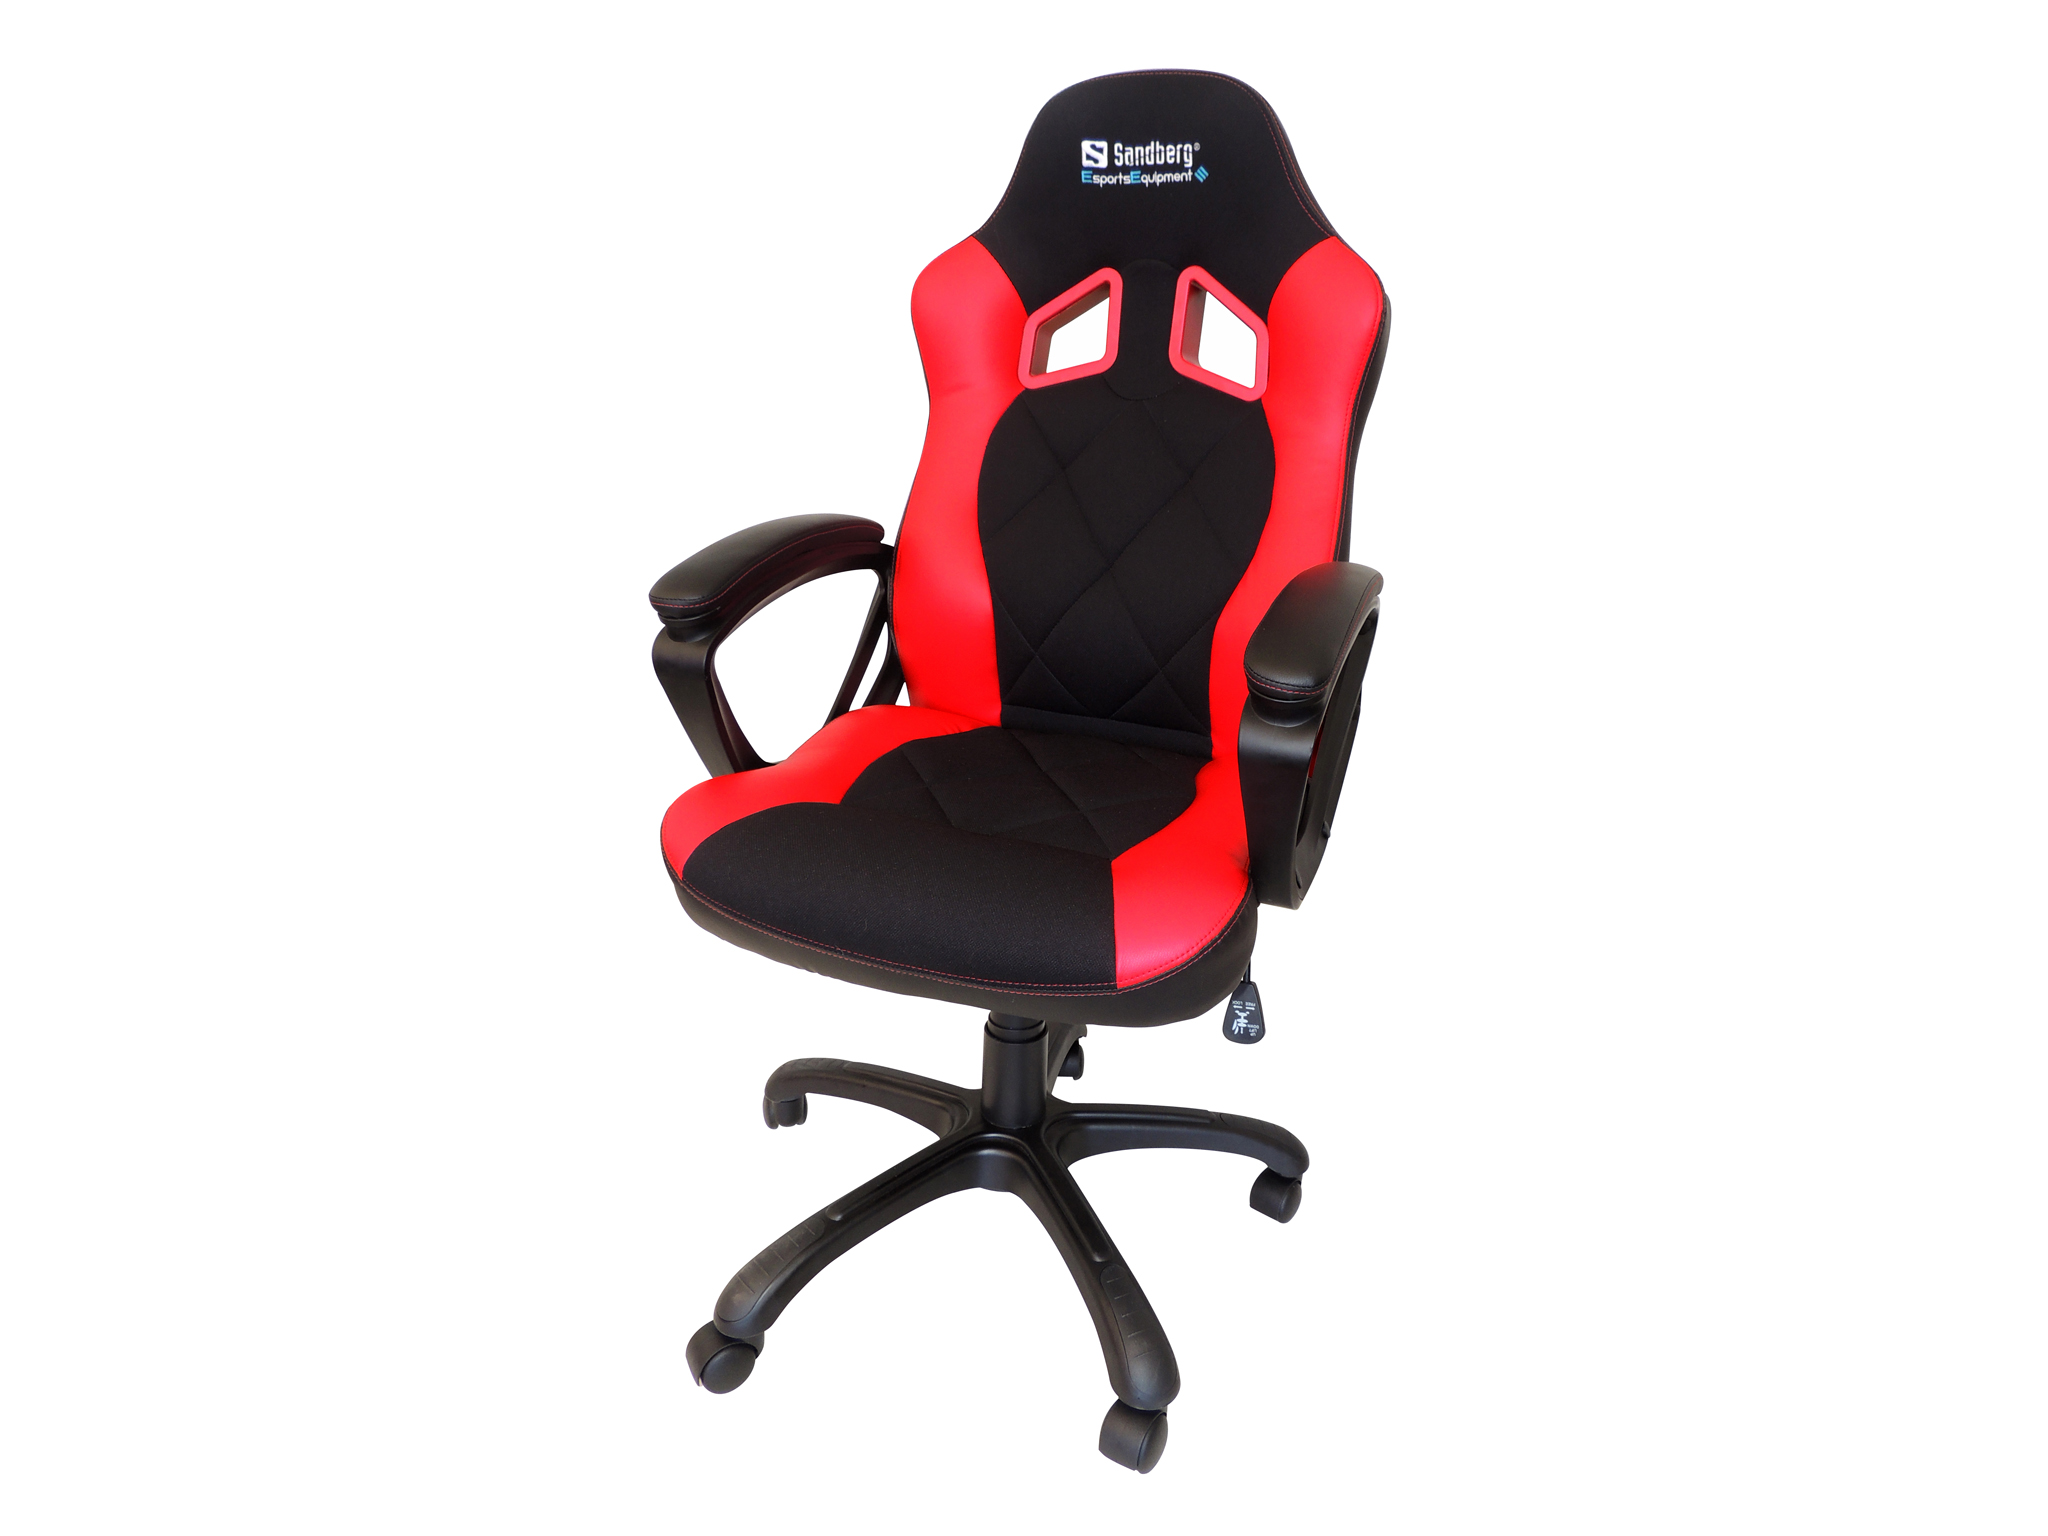 Sandberg Warrior Gaming Chair Product Review